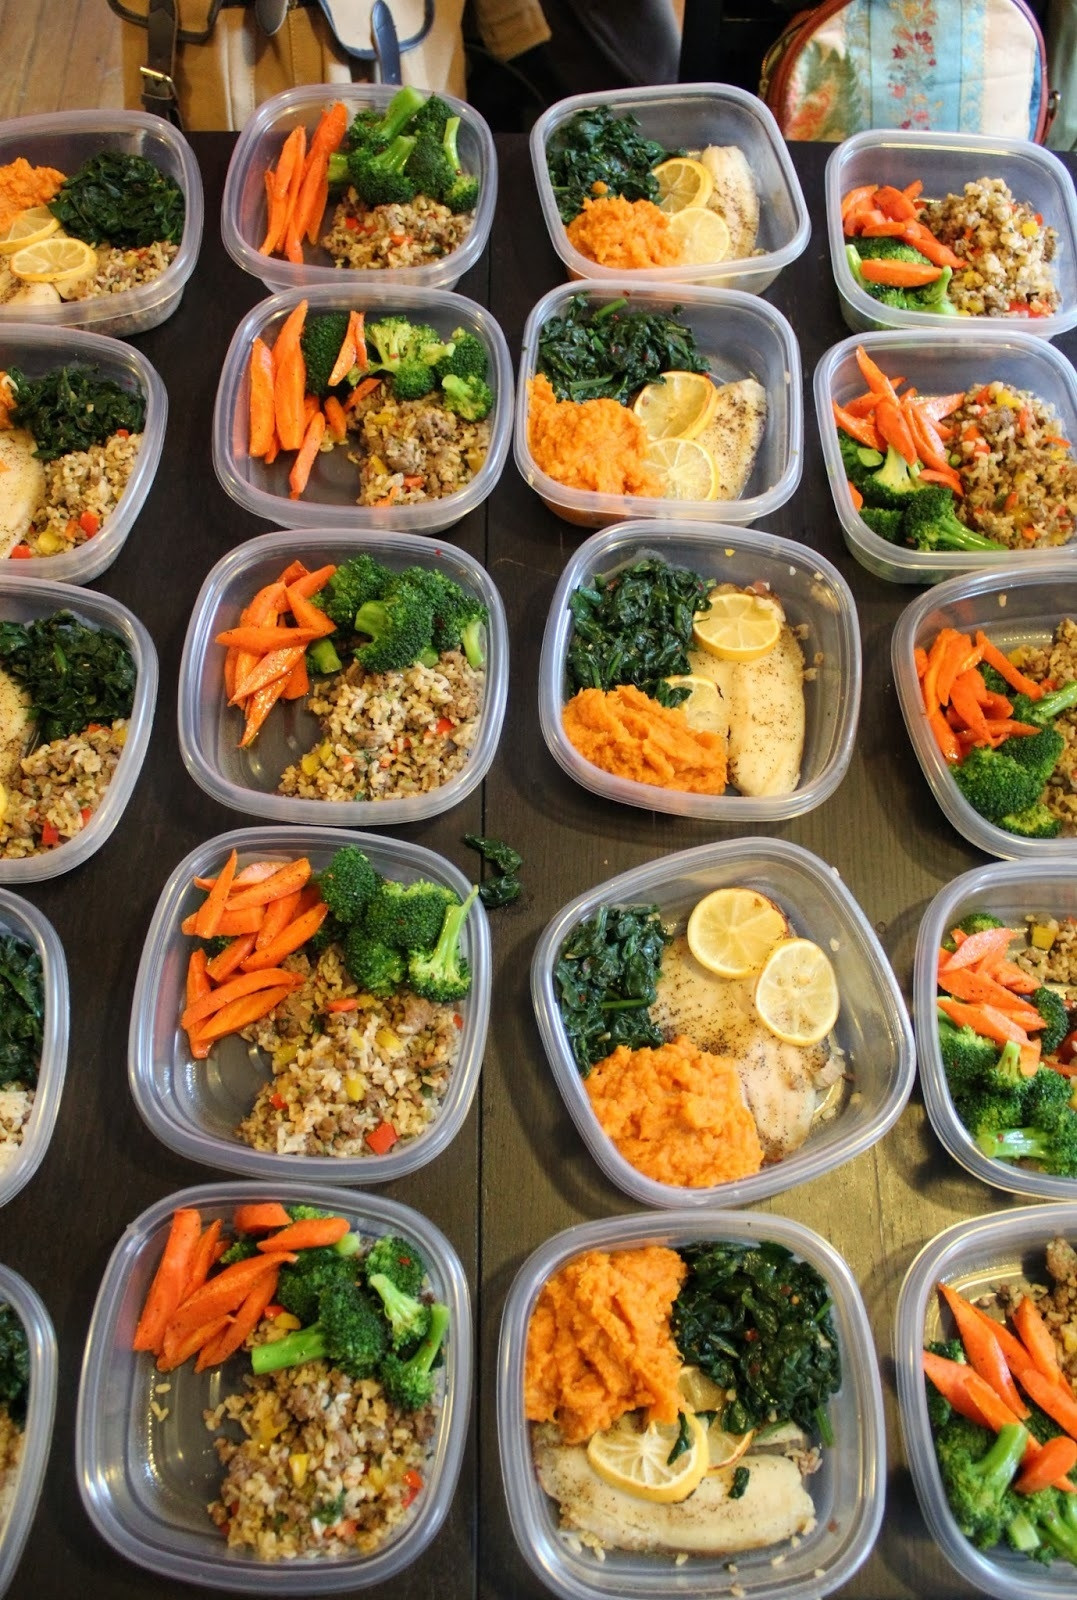 Healthy Simple Dinners  Healthy Meal Prep Ideas For The WeekWritings and Papers